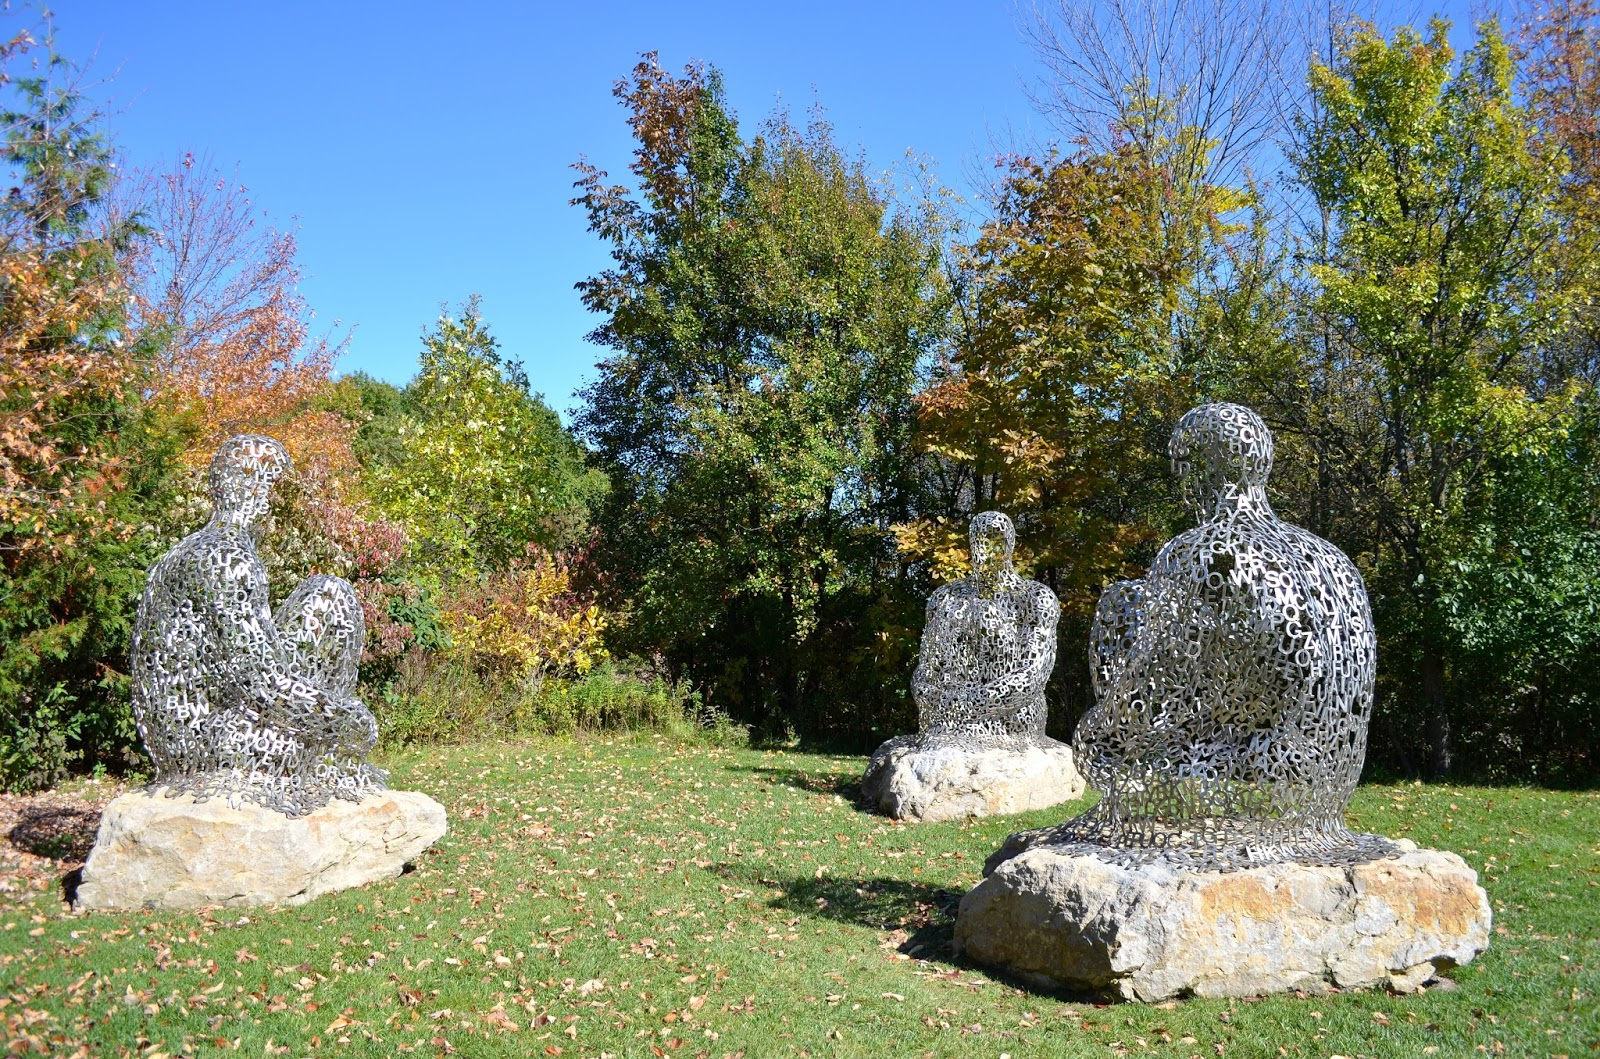 Meijer Gardens and Sculpture Park